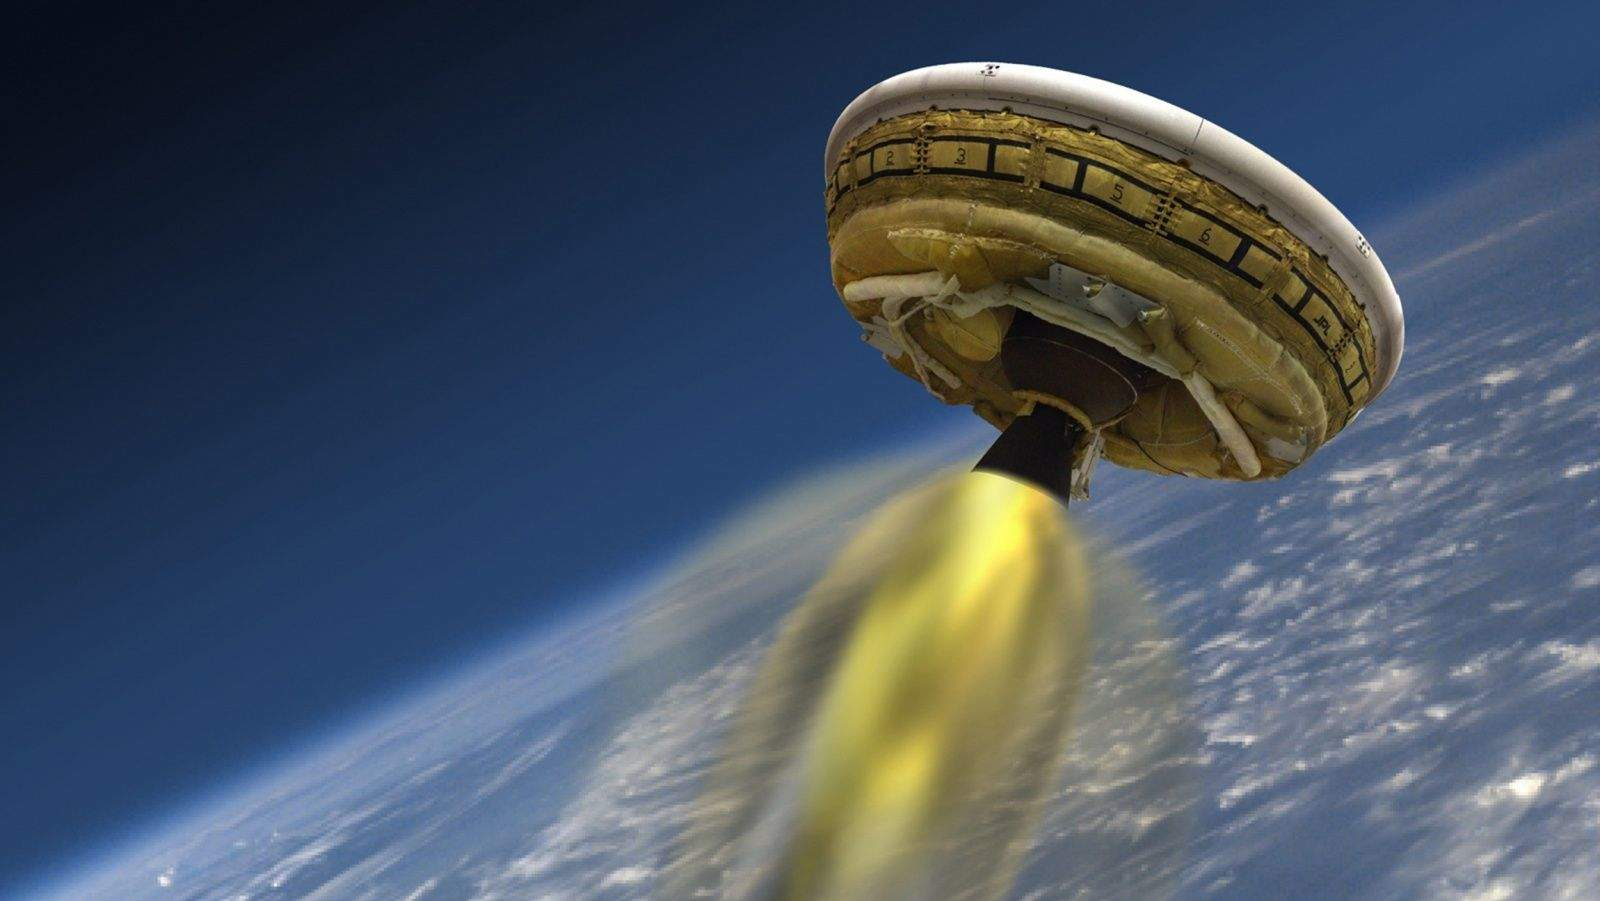 https://i0.wp.com/cdn.cultofmac.com/wp-content/uploads/2015/03/nasa_saucer004.jpg